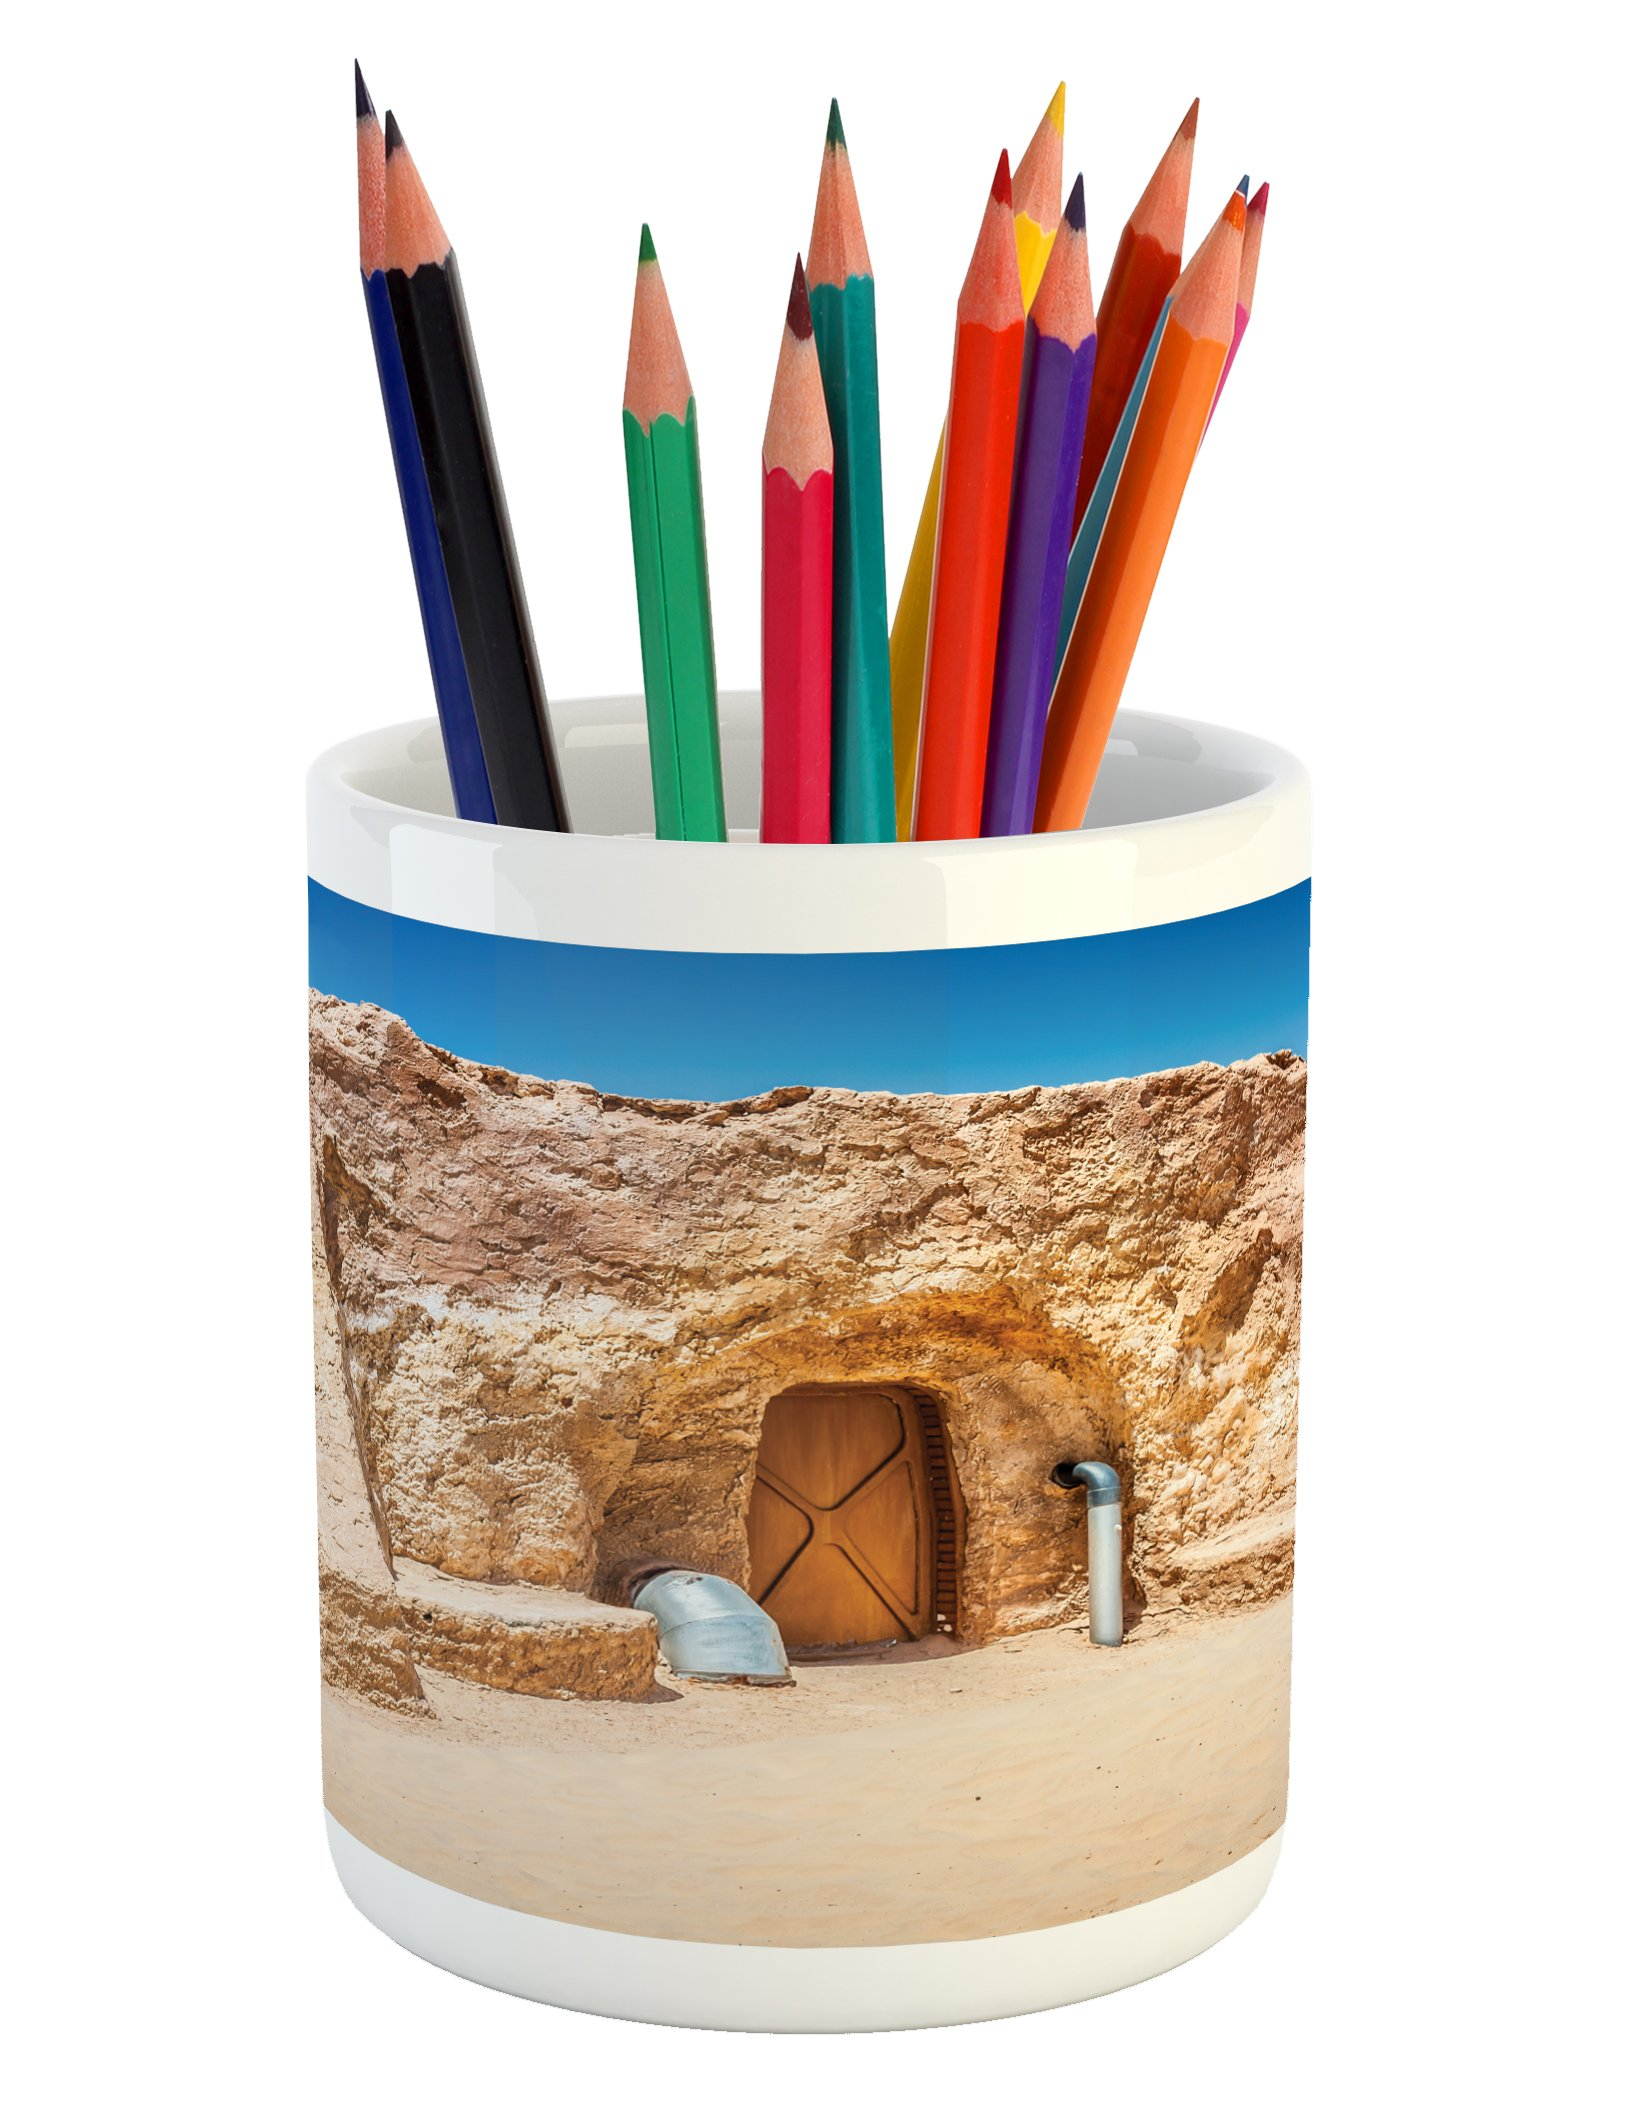 Ambesonne Galaxy Pencil Pen Holder, One of Abandoned Sets of Movie in Tunisia Desert Phantom Menace Galaxy Themed Image, Printed Ceramic Pencil Pen Holder for Desk Office Accessory, Brown Blue